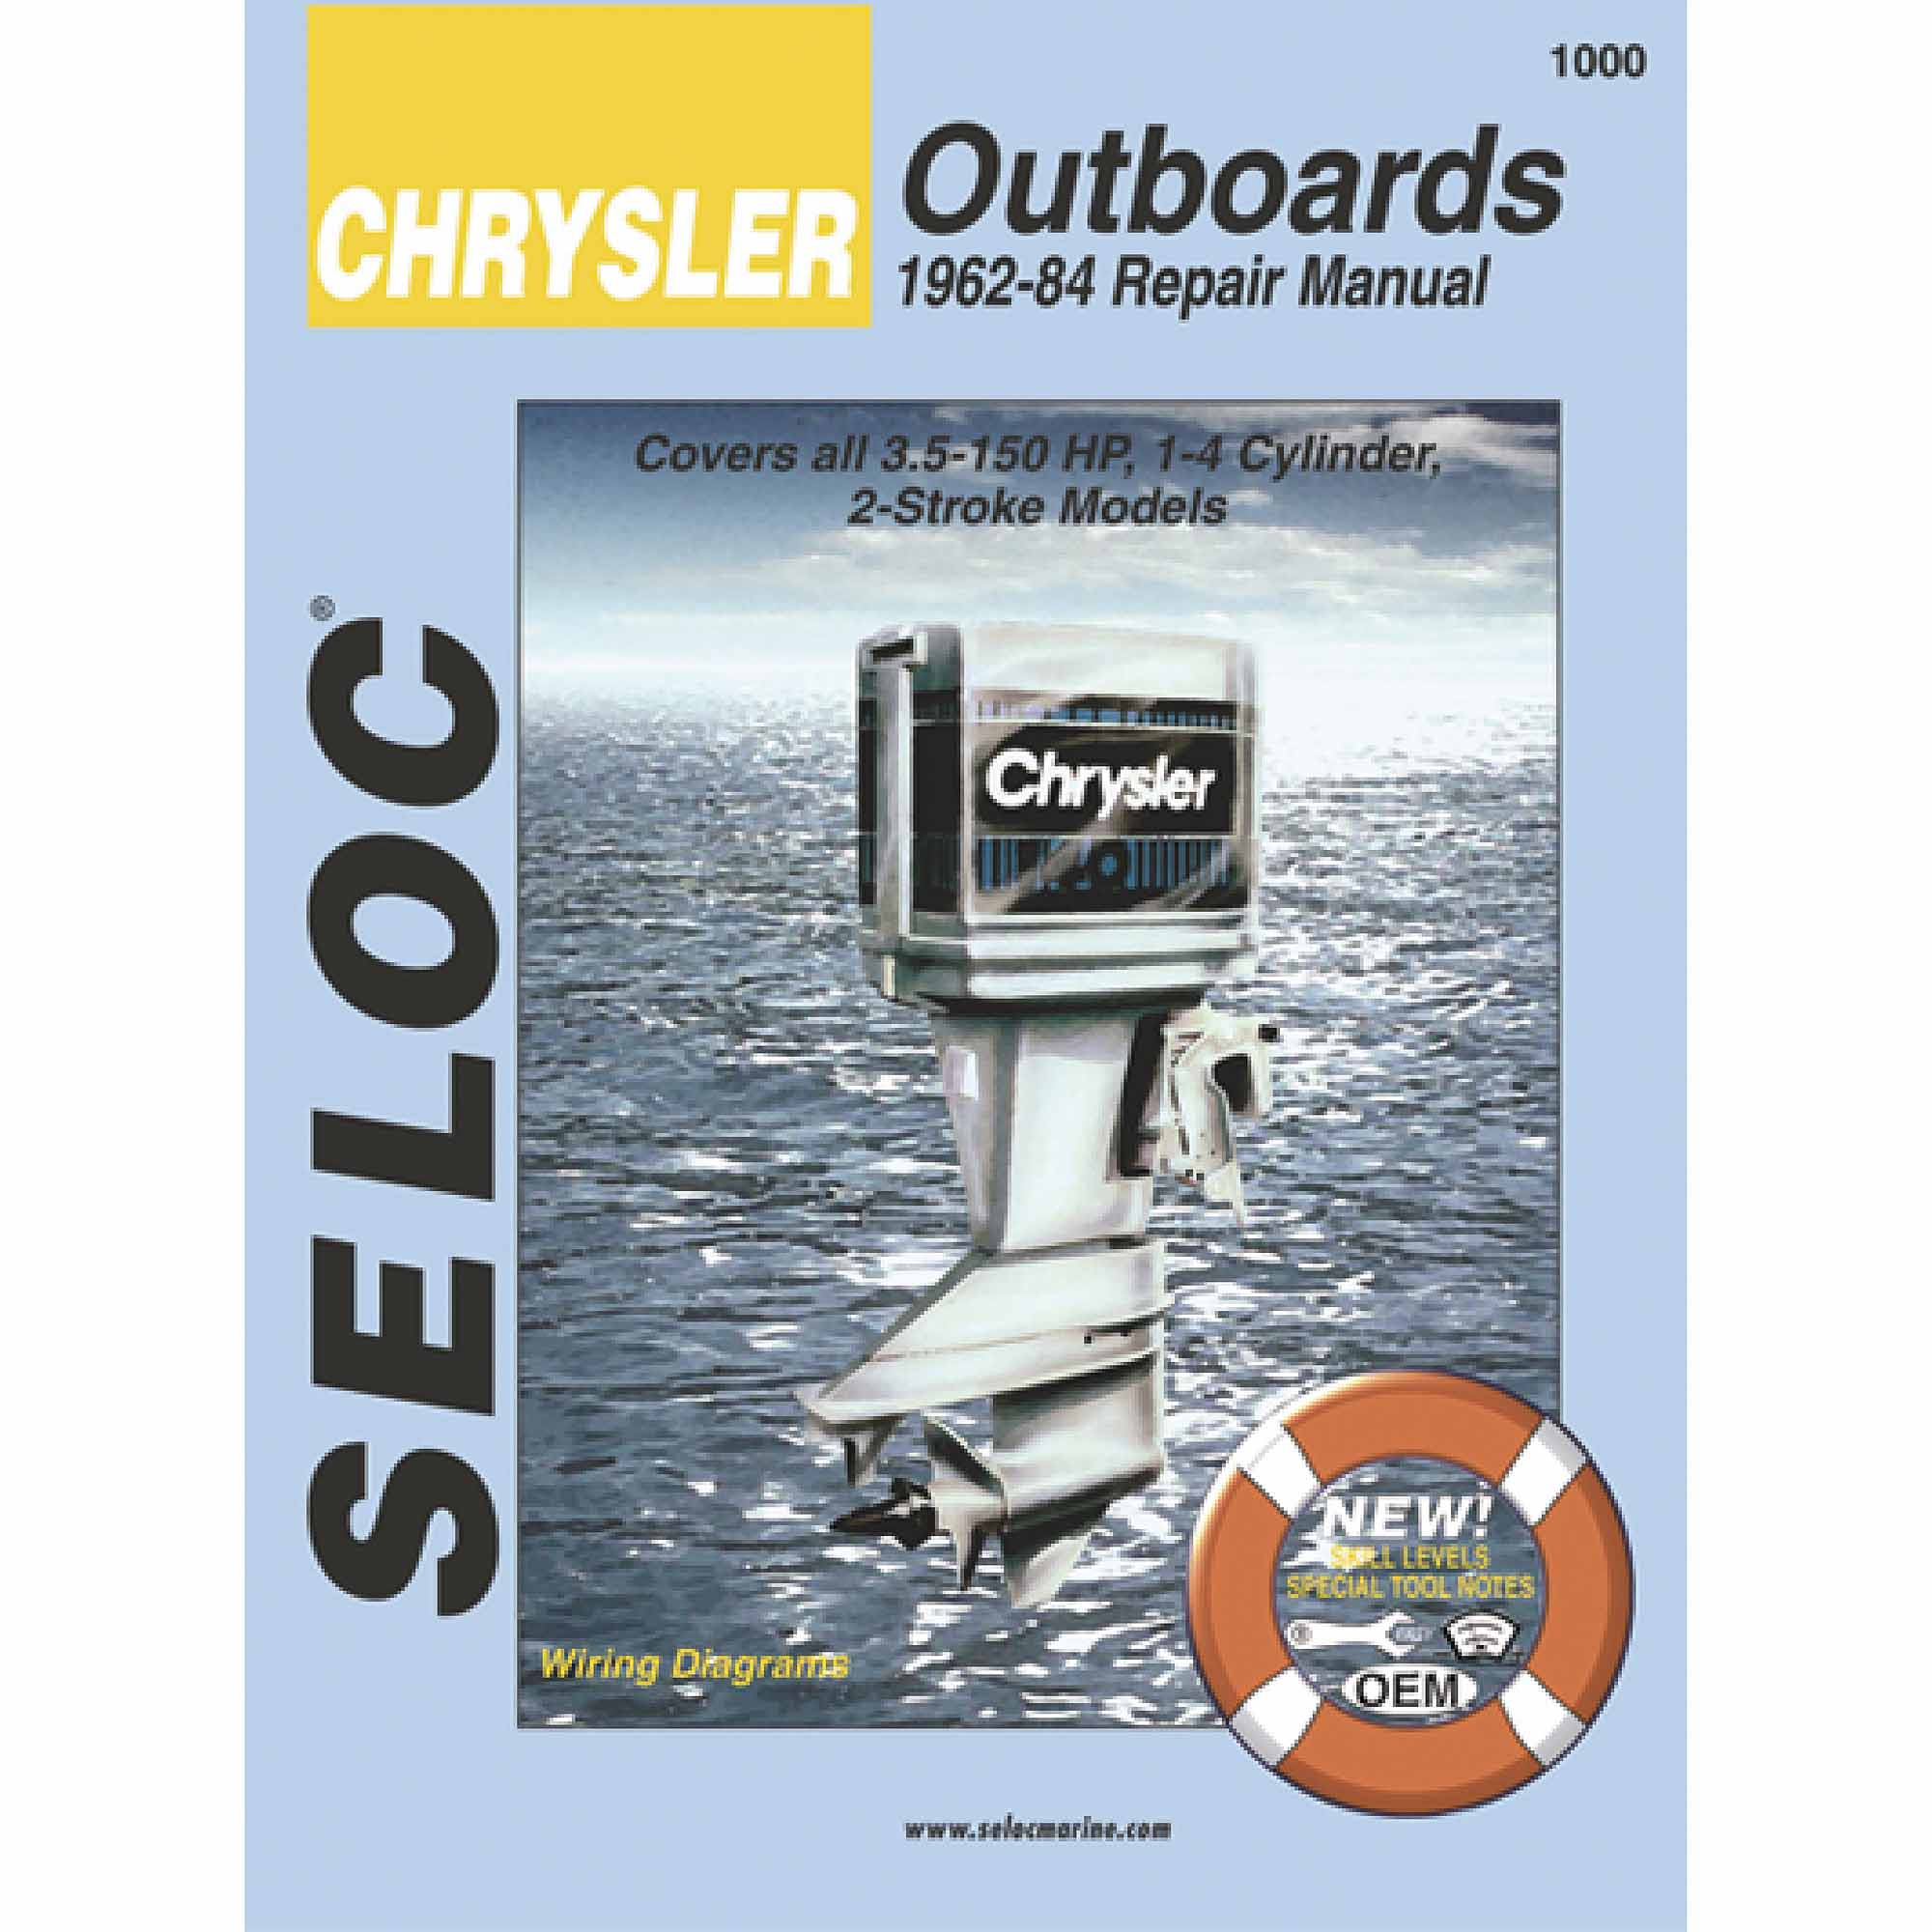 Seloc Marine Manual For Yamaha Outboards Chrysler Outboard Wiring